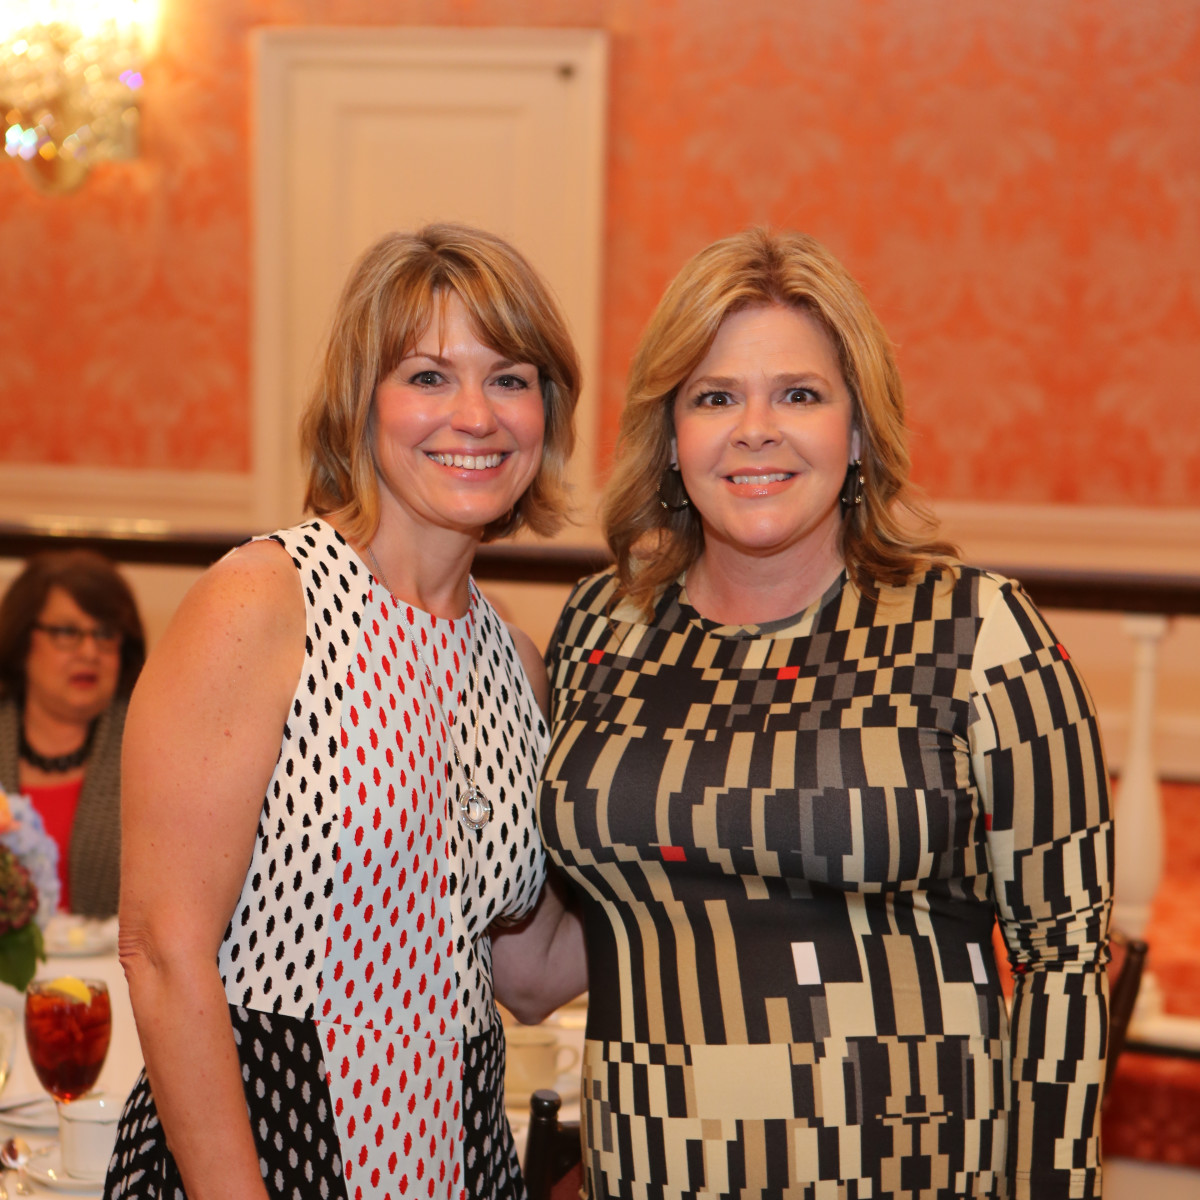 News, Shelby, Houston Museum of Natural Science Luncheon, Oct. 2015, Kelley Lubanko and Kelli Weinzierl